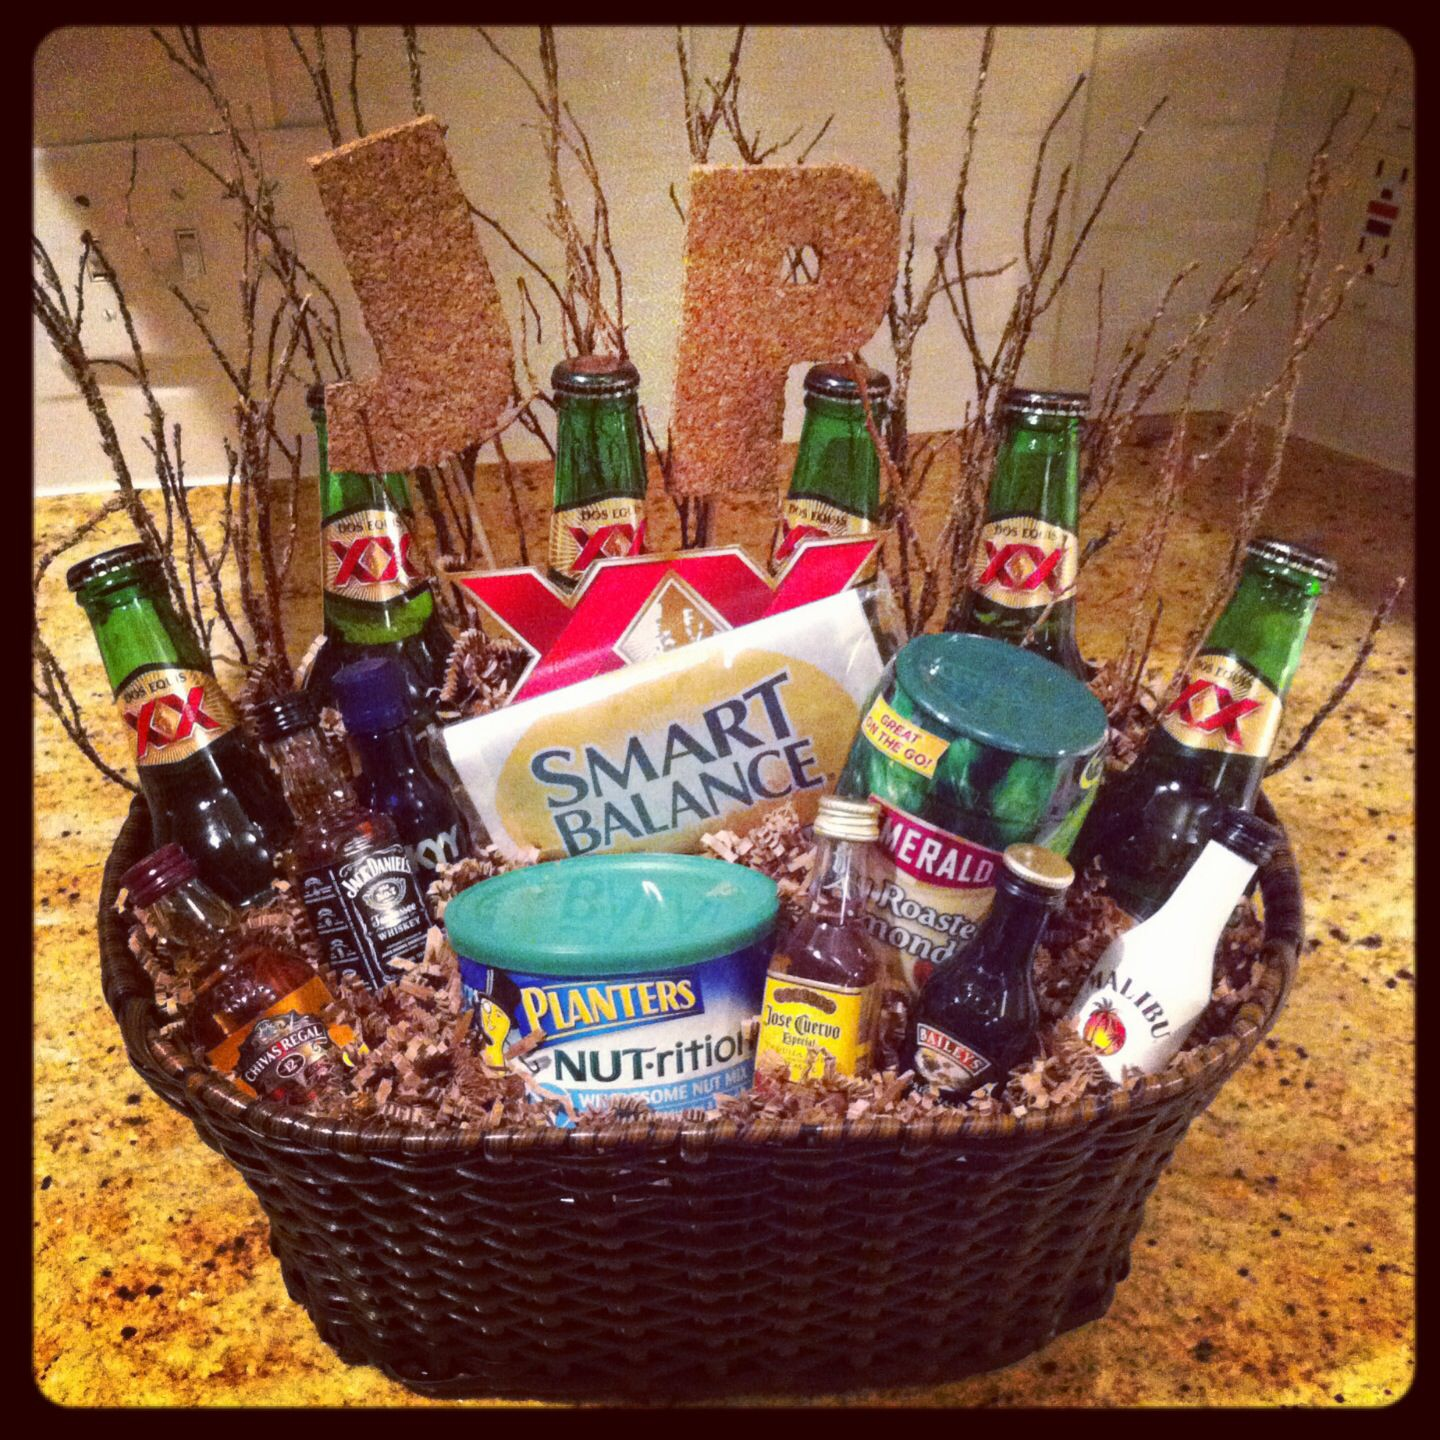 Christmas Gifts For Men South Africa: Male Birthday Gift Basket! Super Easy To Make! Basket And